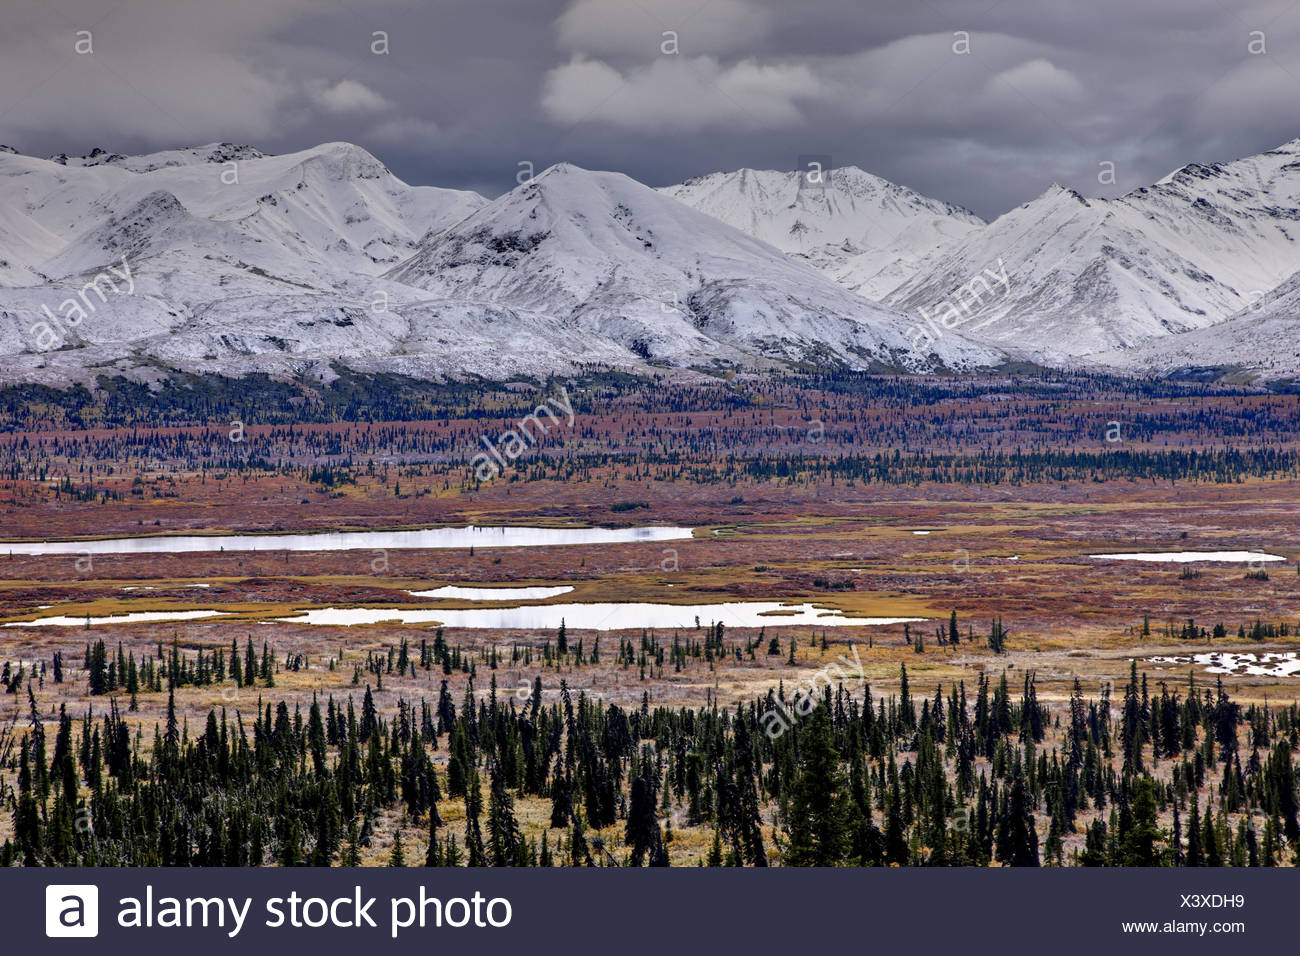 North America, the USA, Alaska, the central south, Chugach Mountains, - Stock Image